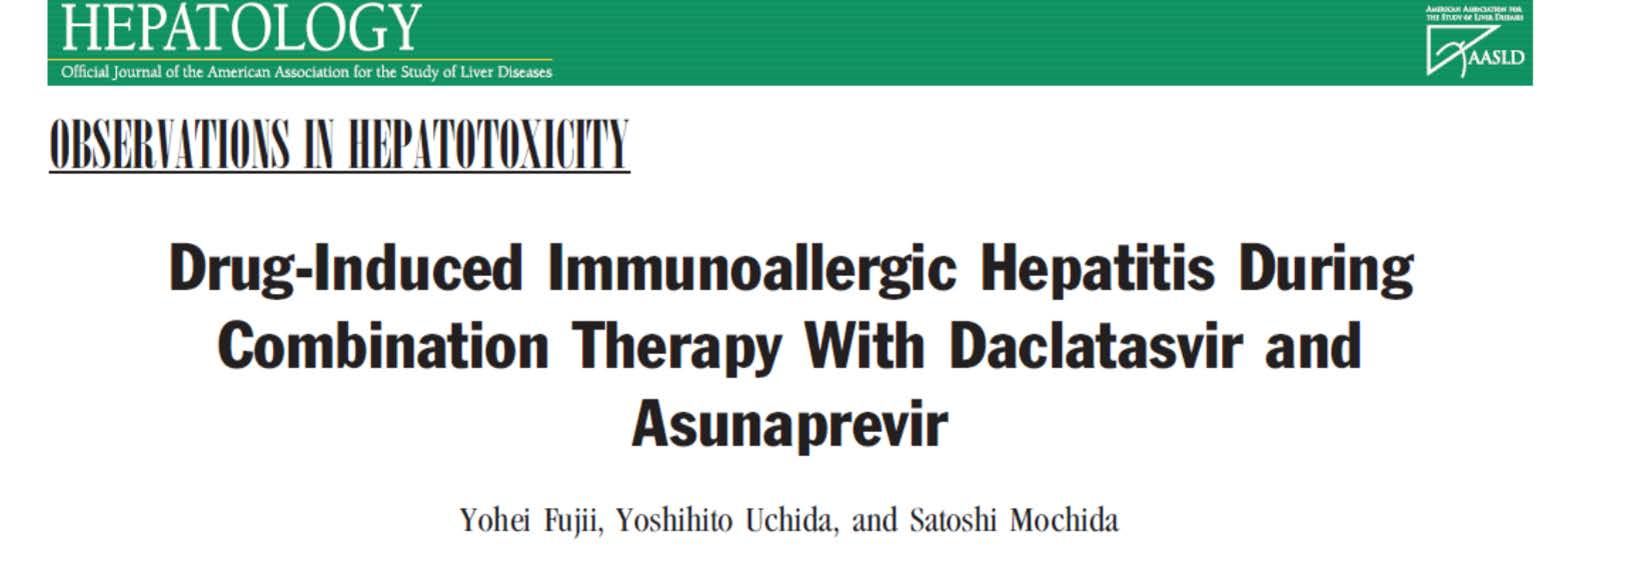 Daclatasvir (DCV) NS5A inhibitor Asunaprevir (ASV) NS3/4A protease inhibitor Approved in